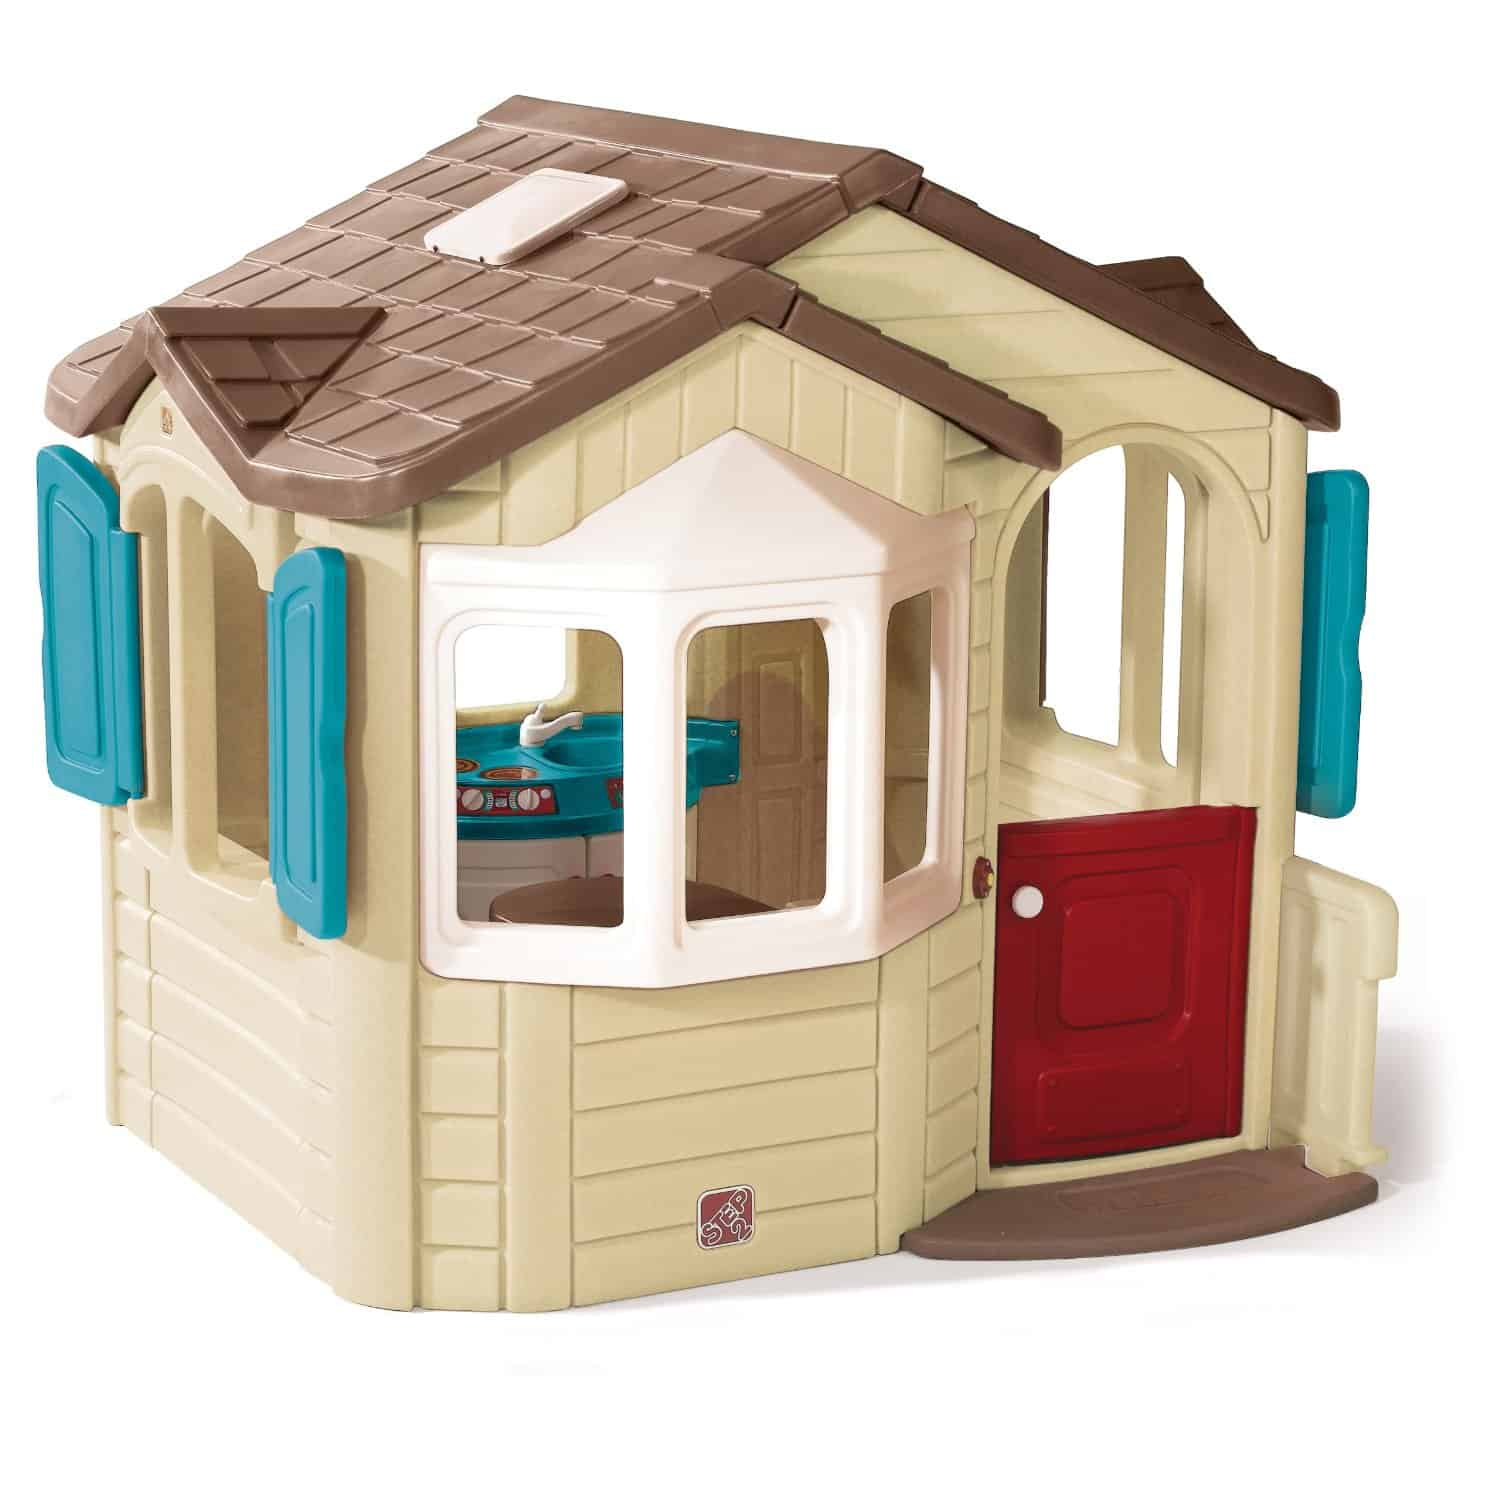 Outdoor Playhouses Toy : Plastic playhouses cool outdoor toys